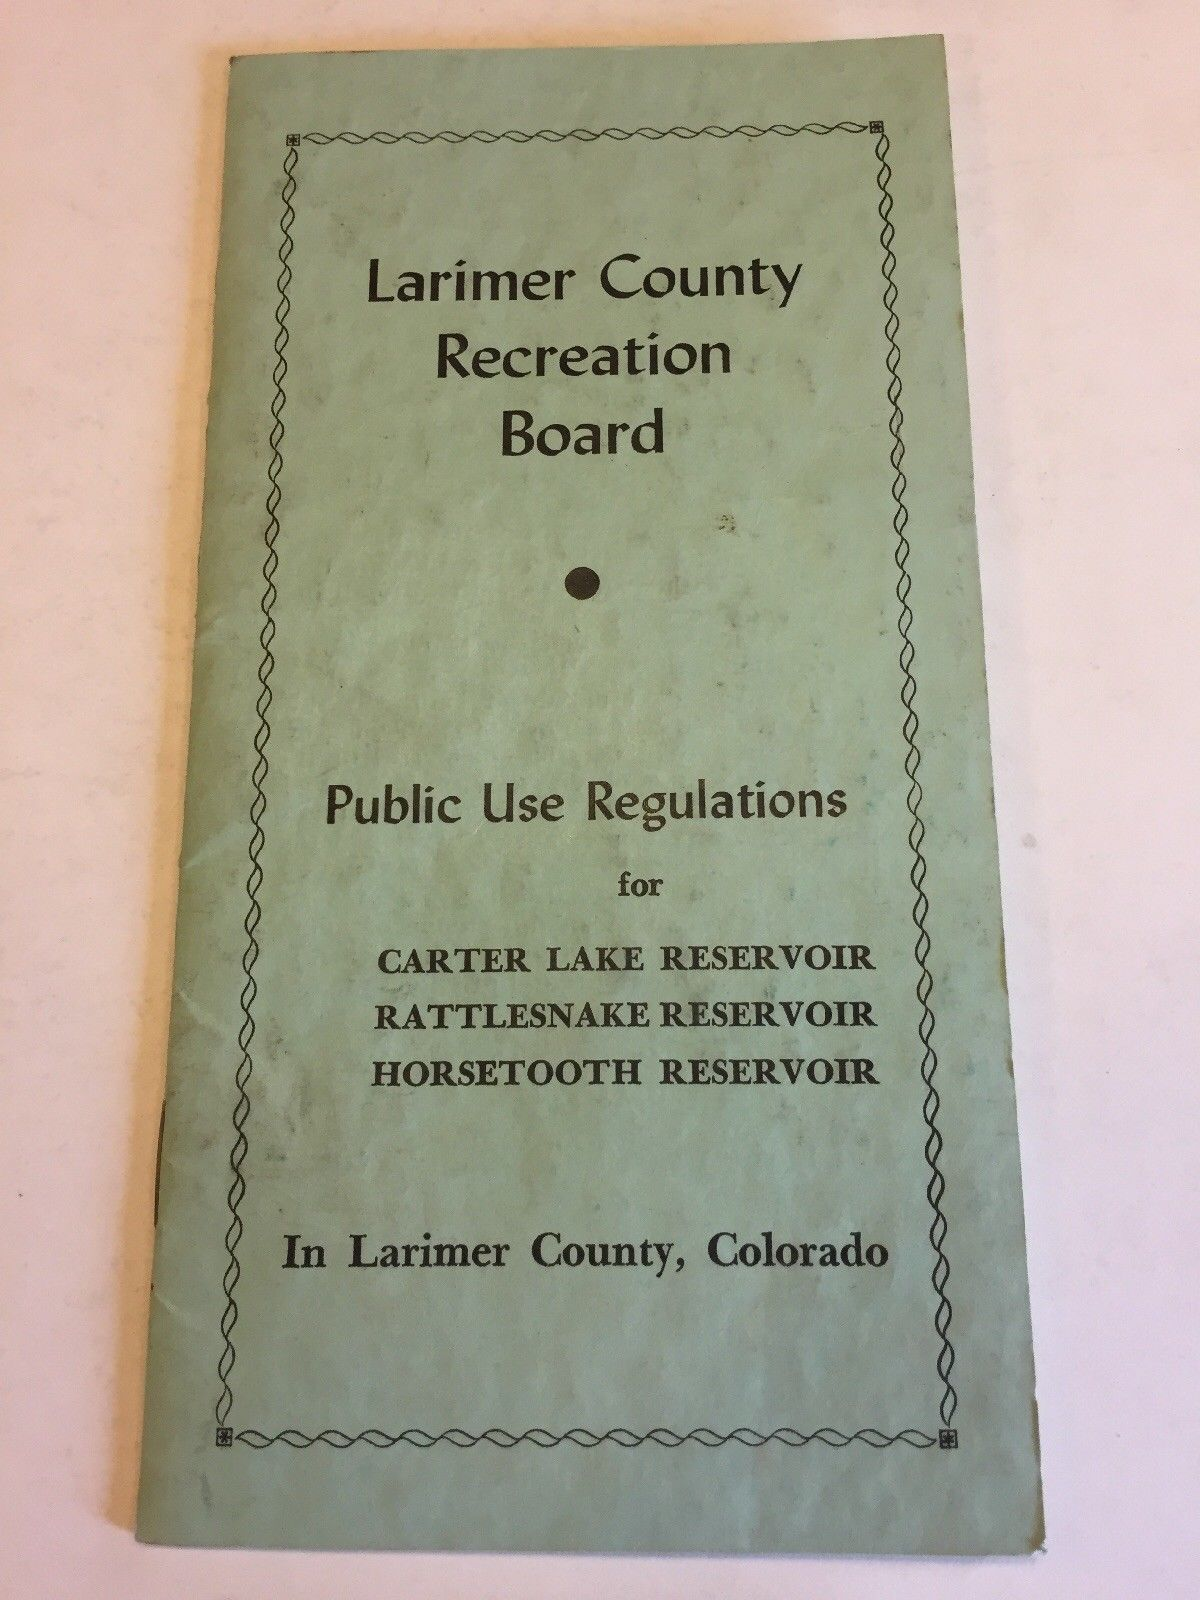 First 2017 Colorado Equine WNV Case Confirmed   Business Solutions furthermore Larimer County  CO Zip Code Wall Map Basic Style by MarketMAPS besides File Map of Colorado highlighting Larimer County svg   Wikipedia further Larimer County  Colorado County Information   ePodunk further Map of Larimer County  Colorado   A D  1883   showing public roads together with  together with Larimer County  Colorado   Wikipedia also Air Care Colorado    Larimer County Boundaries also 1960 Larimer County Colorado CO Recreation Board Boating Permit 5951 as well Colorado Parks   Wildlife   Featured Trails Project besides USGS Scientific Investigations Map 3010  Geologic Map of the Clark besides Livermore Quadrangle  Larimer County   Colorado furthermore Ready Northeast   Larimer County in addition Geologic Colorado   Poudre Canyon Area   Maplets likewise Air Care Colorado    Larimer County Boundaries together with Geologic map of the Bull EIk Beryl Crystal  1 pegmae  Larimer. on larimer county colorado map